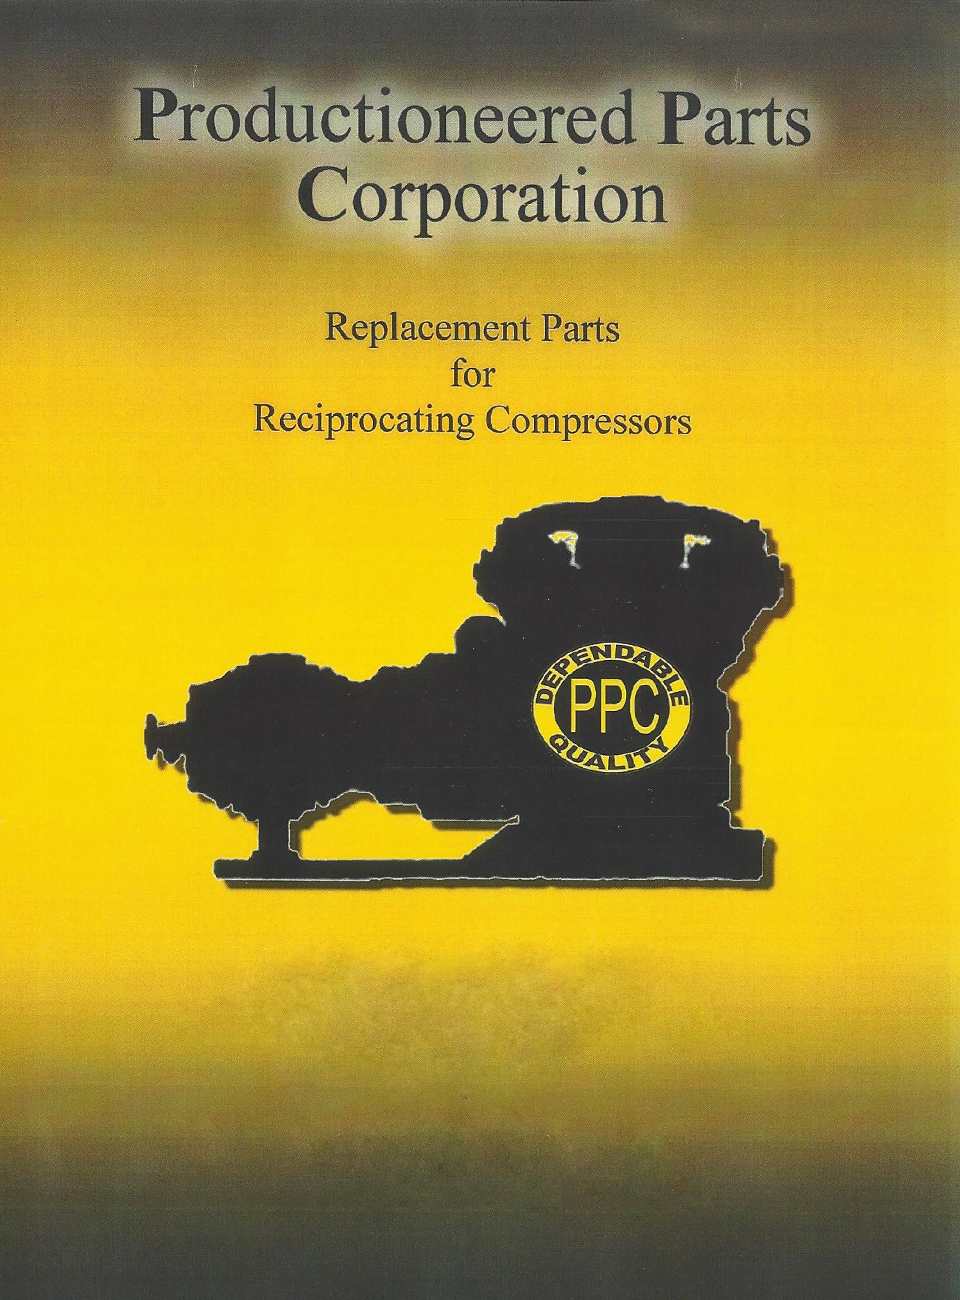 Productioneered Parts Corporation